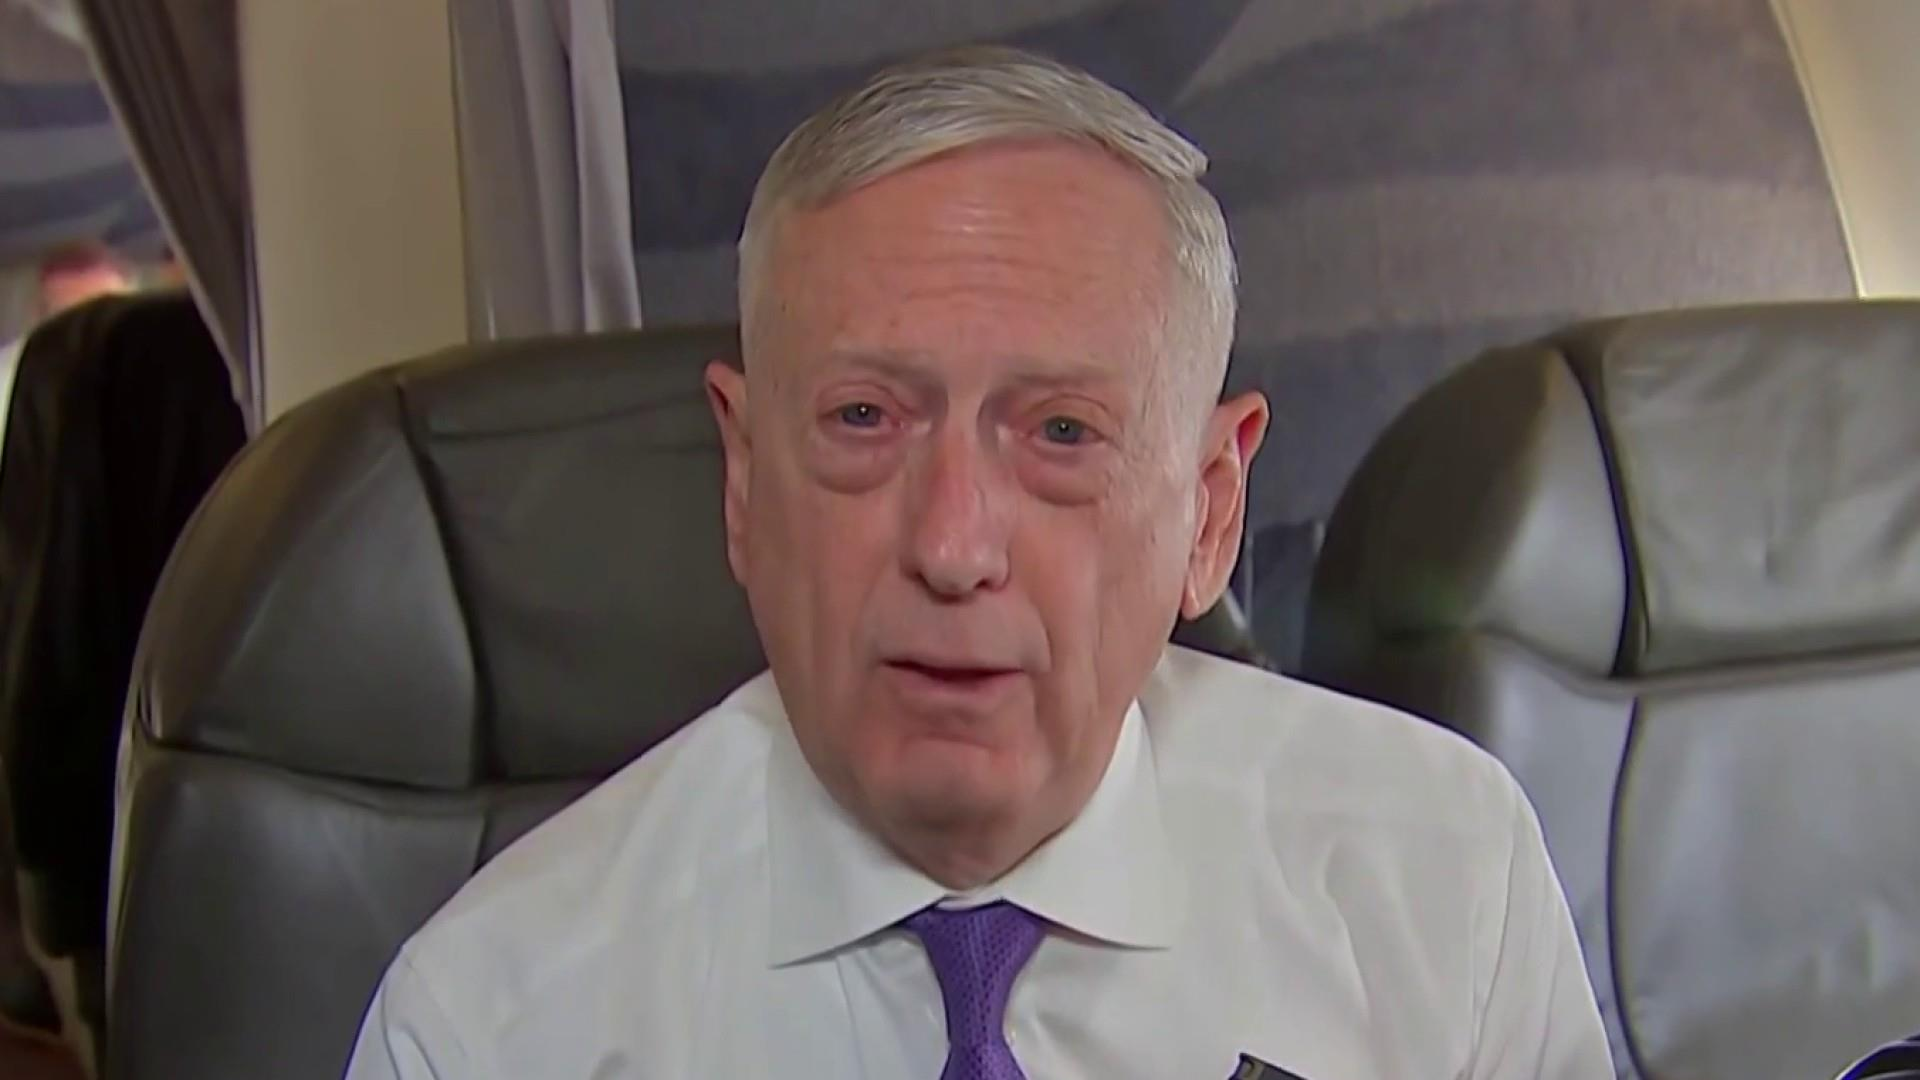 Trump infidelity to allies drives Mattis to resign in protest